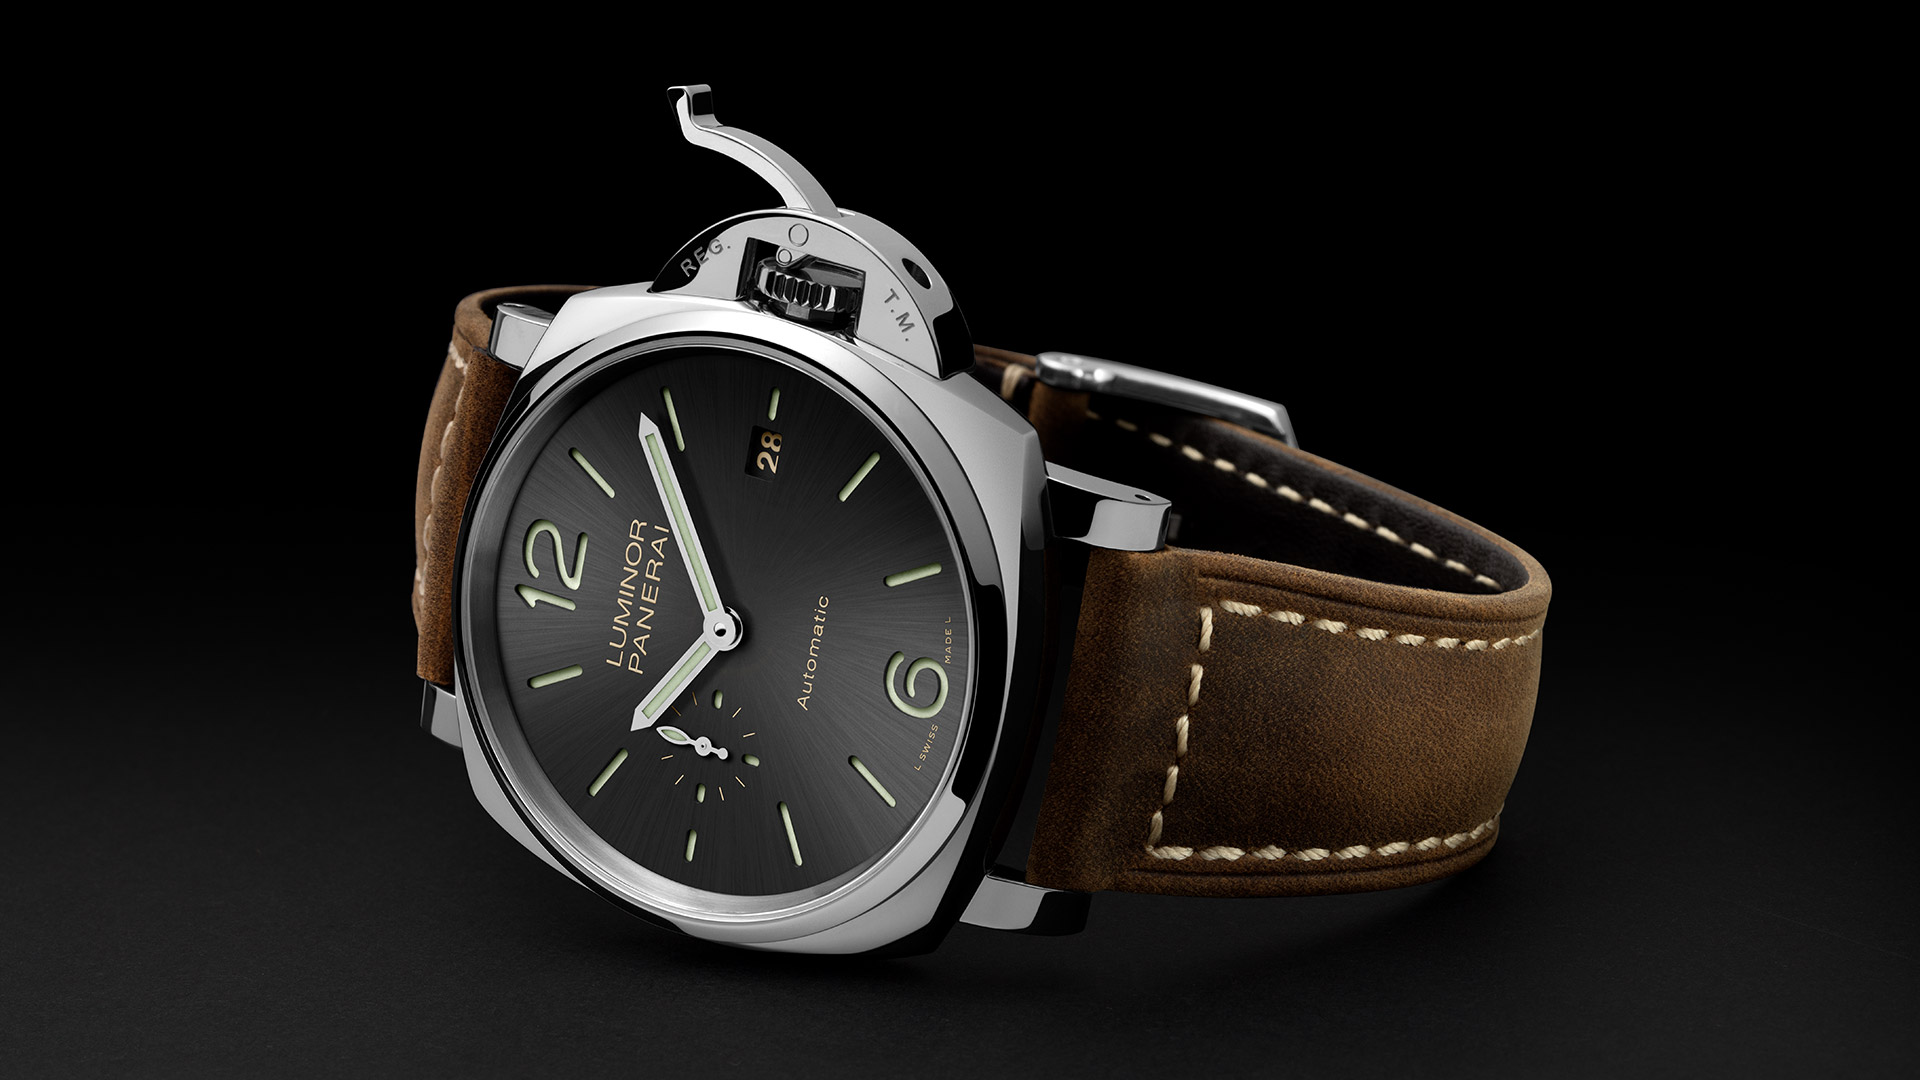 PANERAI LUMINOR DUE 3 DAYS AUTOMATIC ACCI AIO 42MM PAM00904